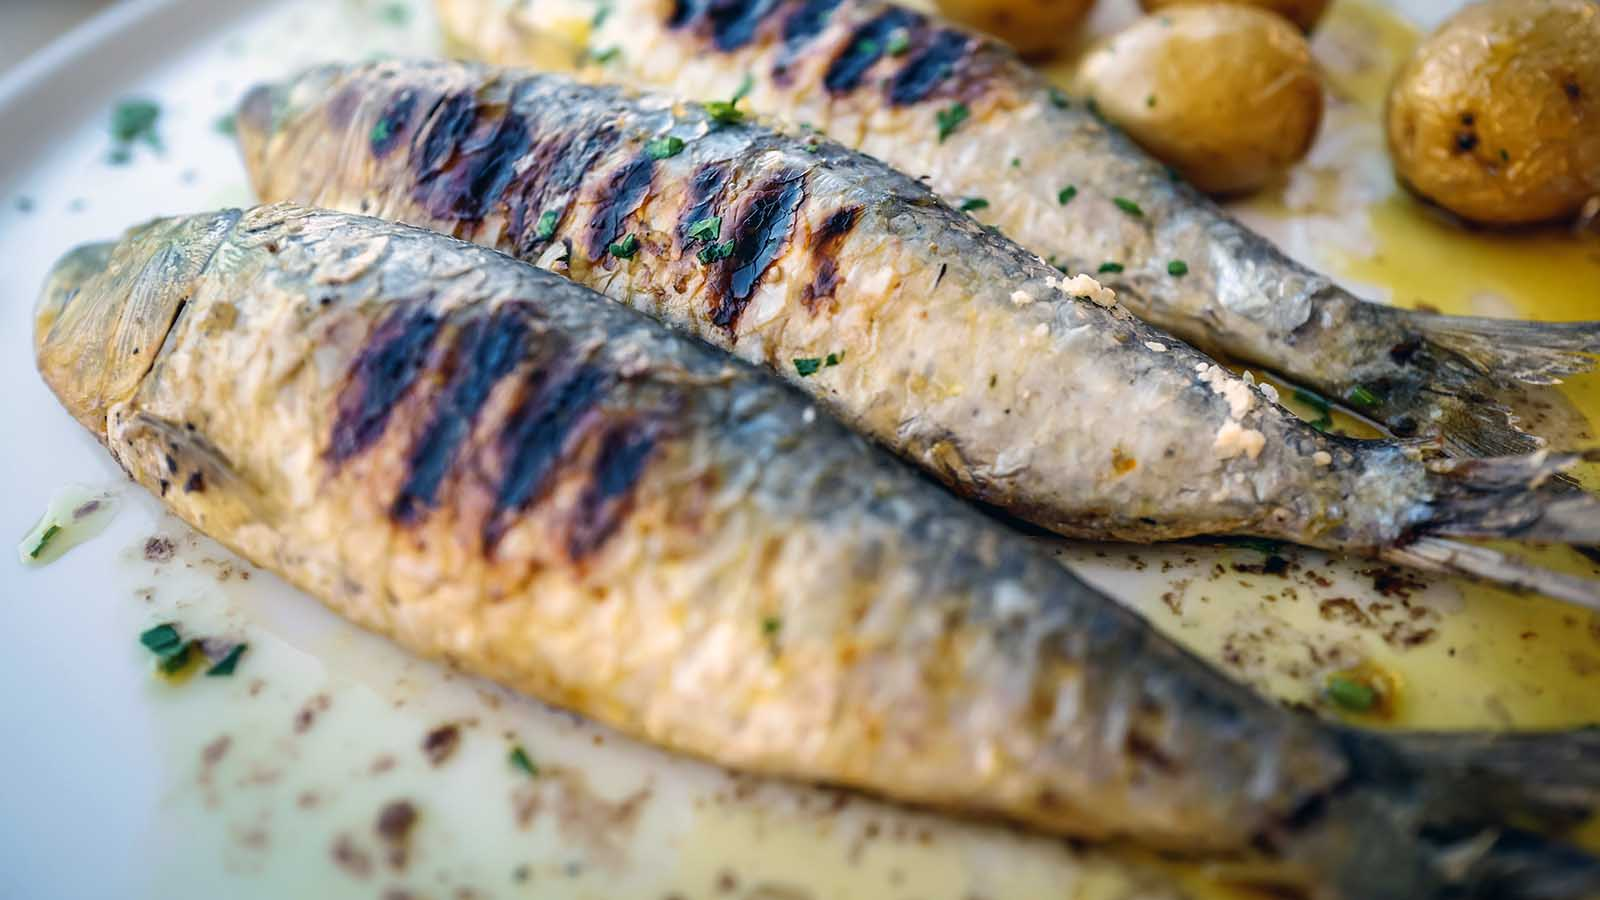 5 Things to Know Before Becoming a Pescatarian